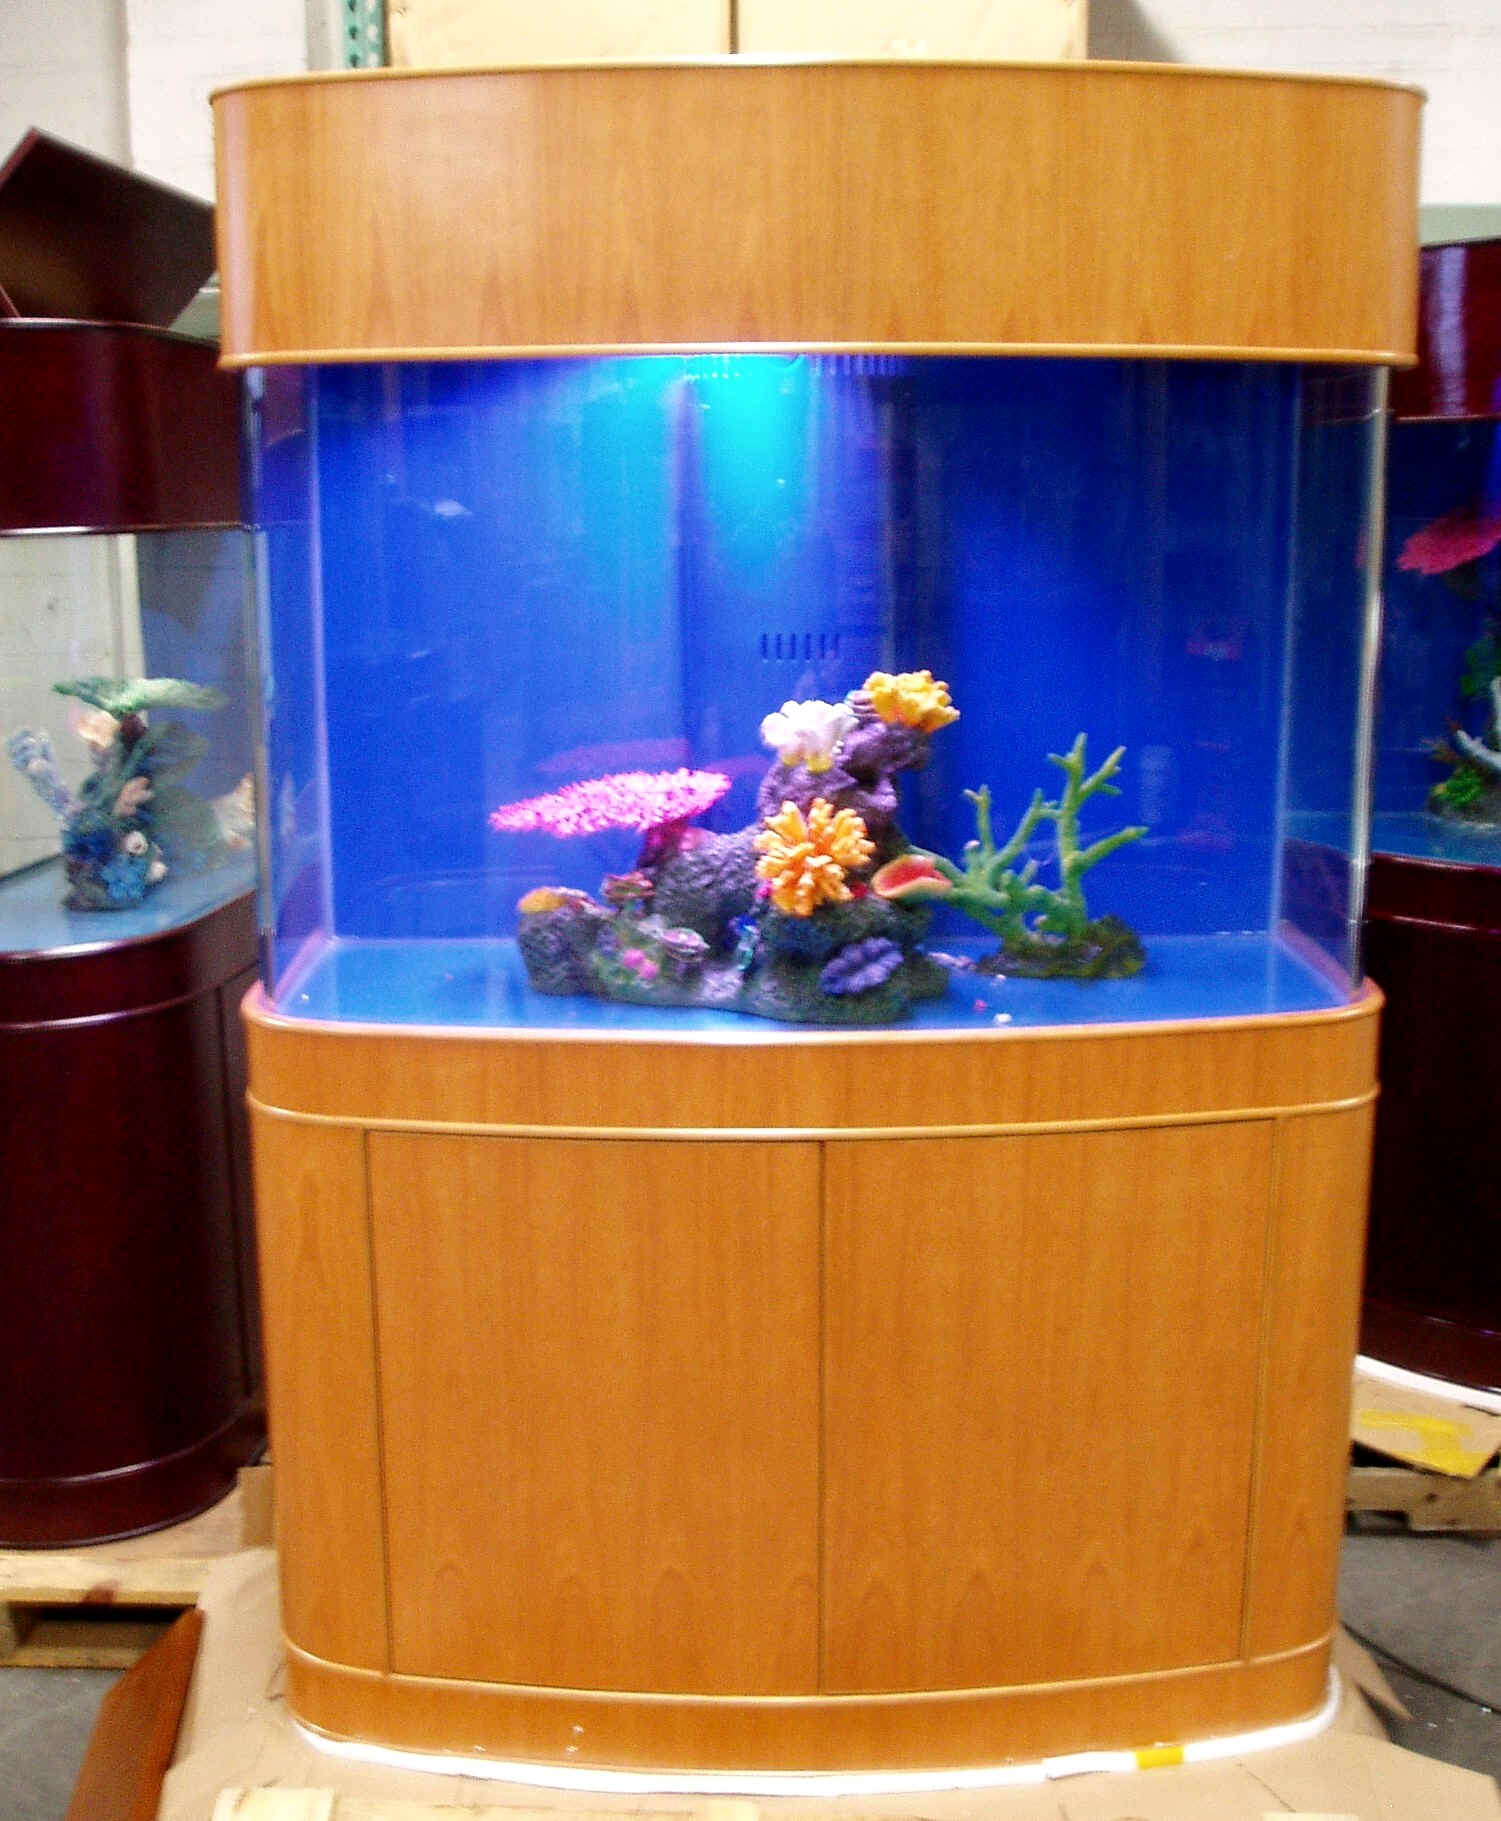 Bow aquarium sizes 1000 aquarium ideas for 75 gallon fish tank dimensions